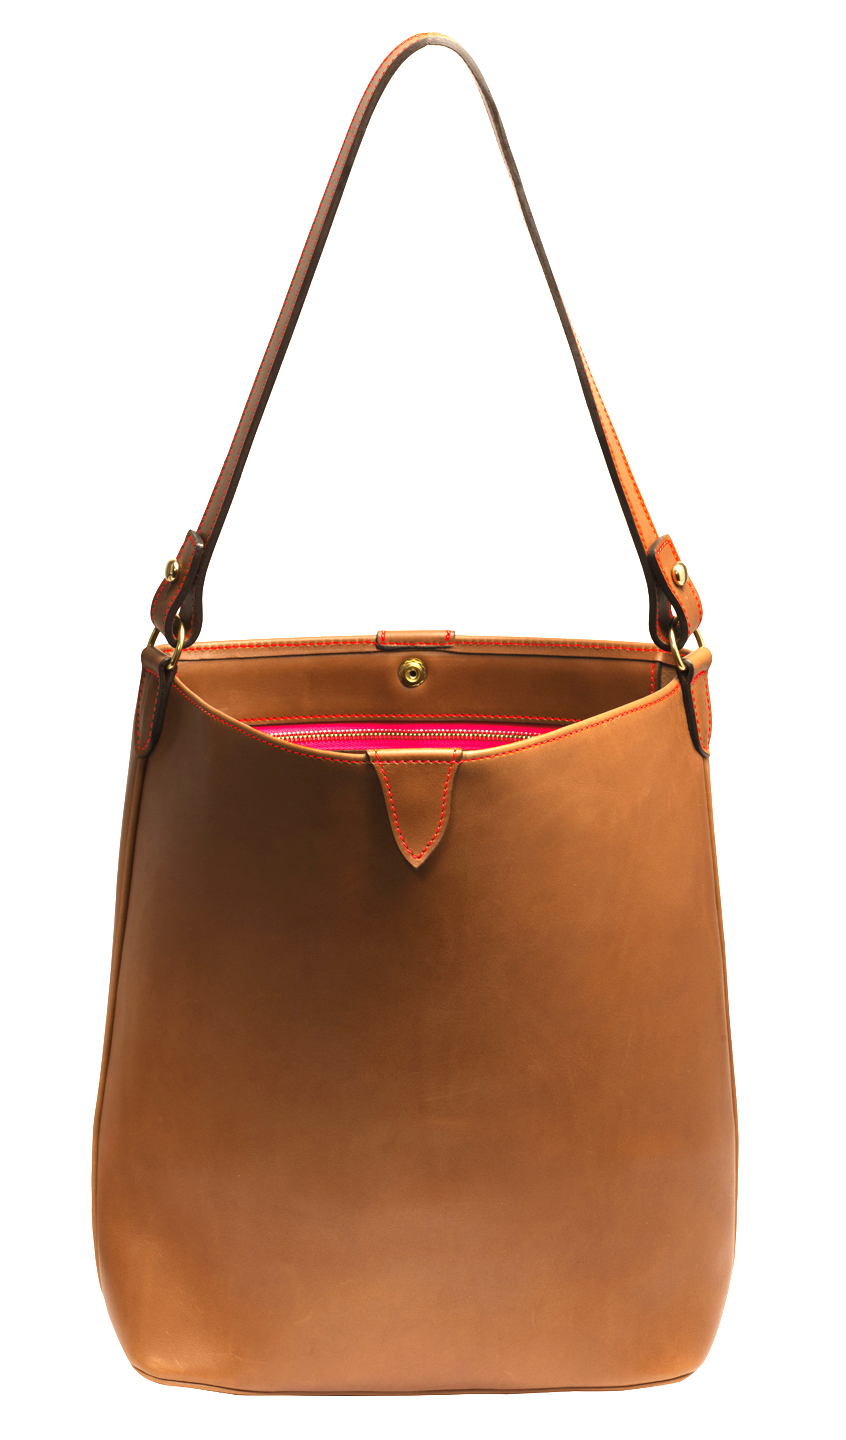 Calfskin bag Pêle Mêle Cognac fil Orange fluo - Maison Thomas